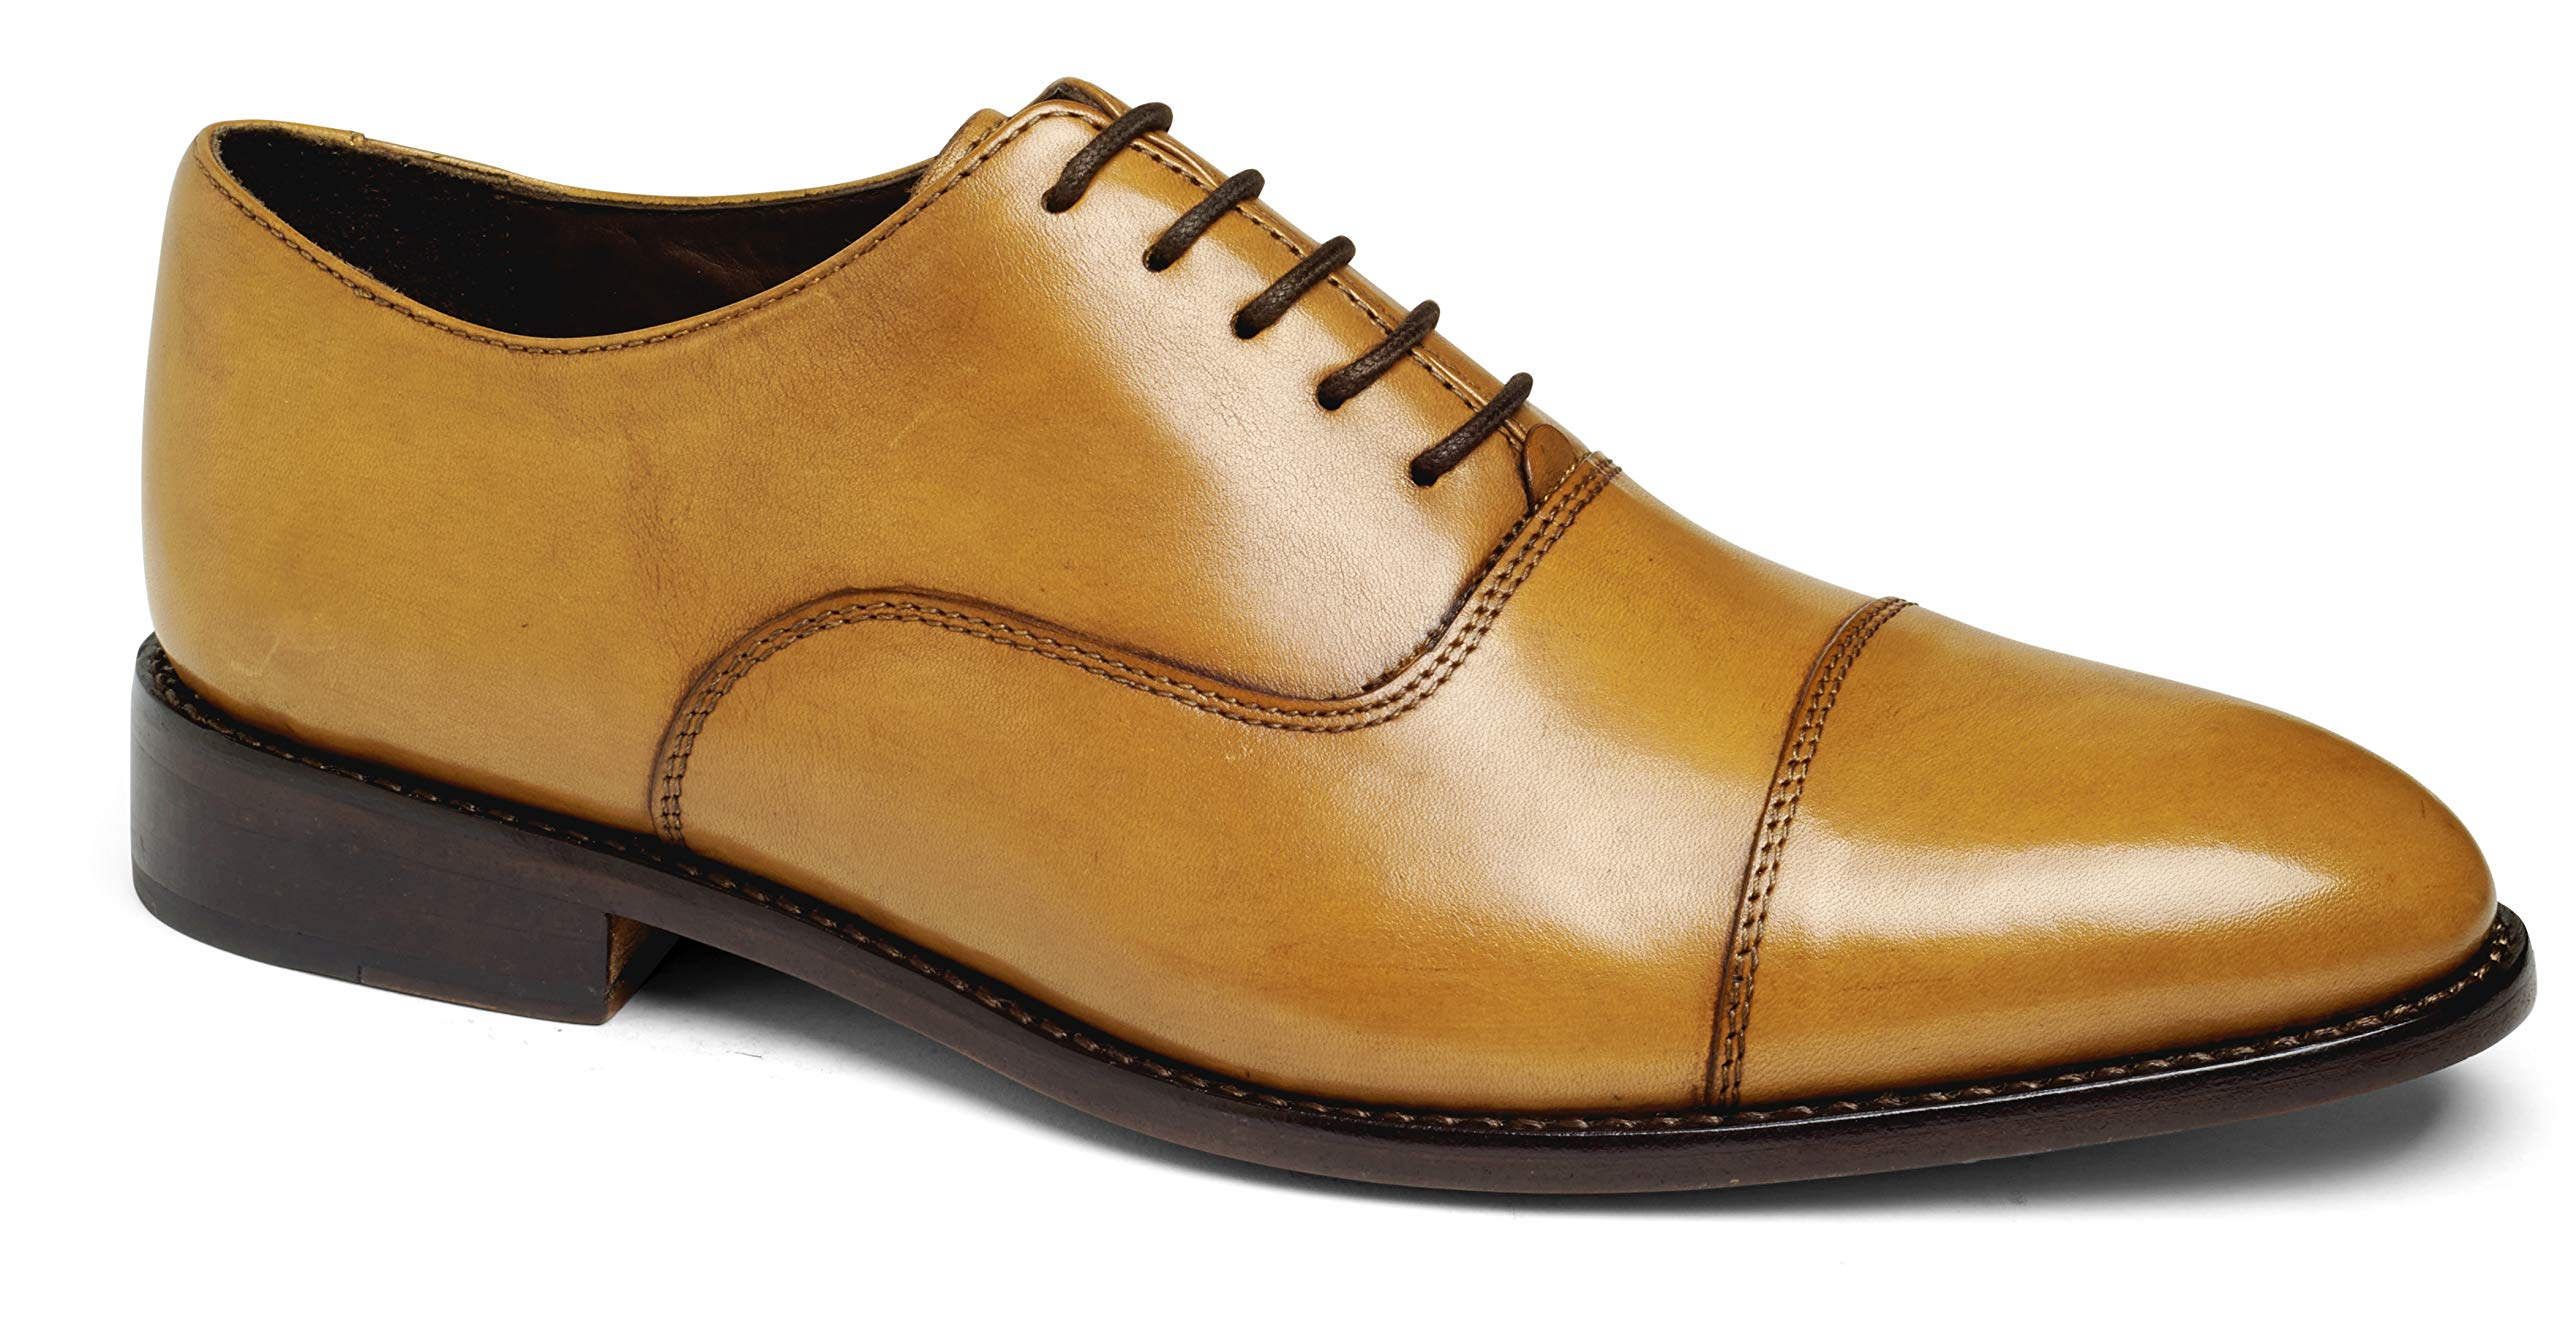 Anthony Veer Mens Dress Shoe Clinton Cap-Toe Oxford Full Grain Leather Goodyear Welted